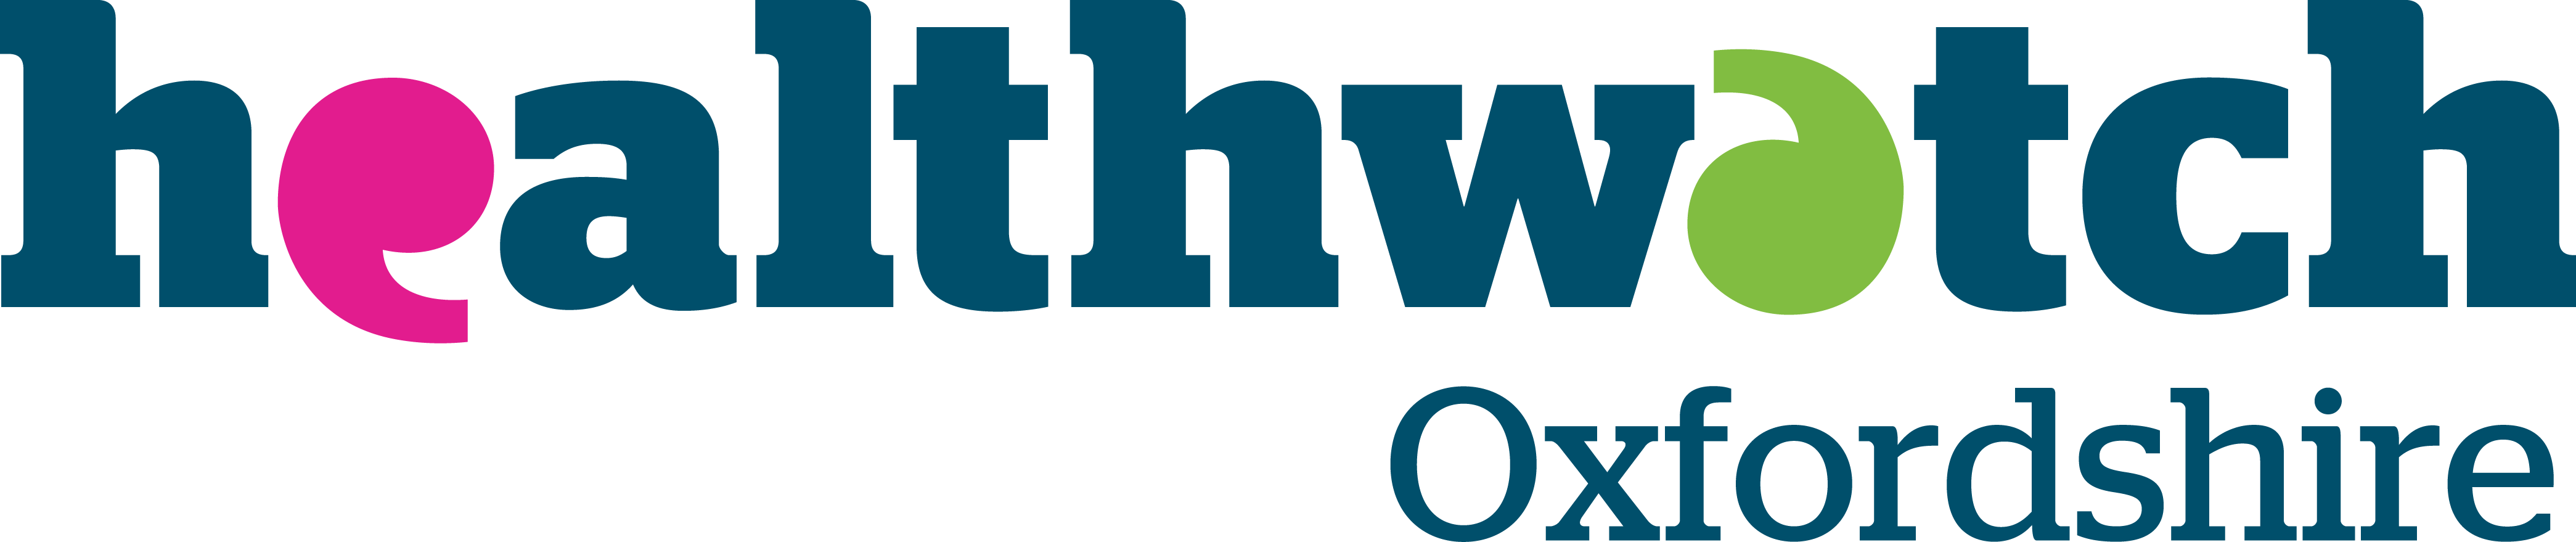 Healthwatch Oxfordshire logo